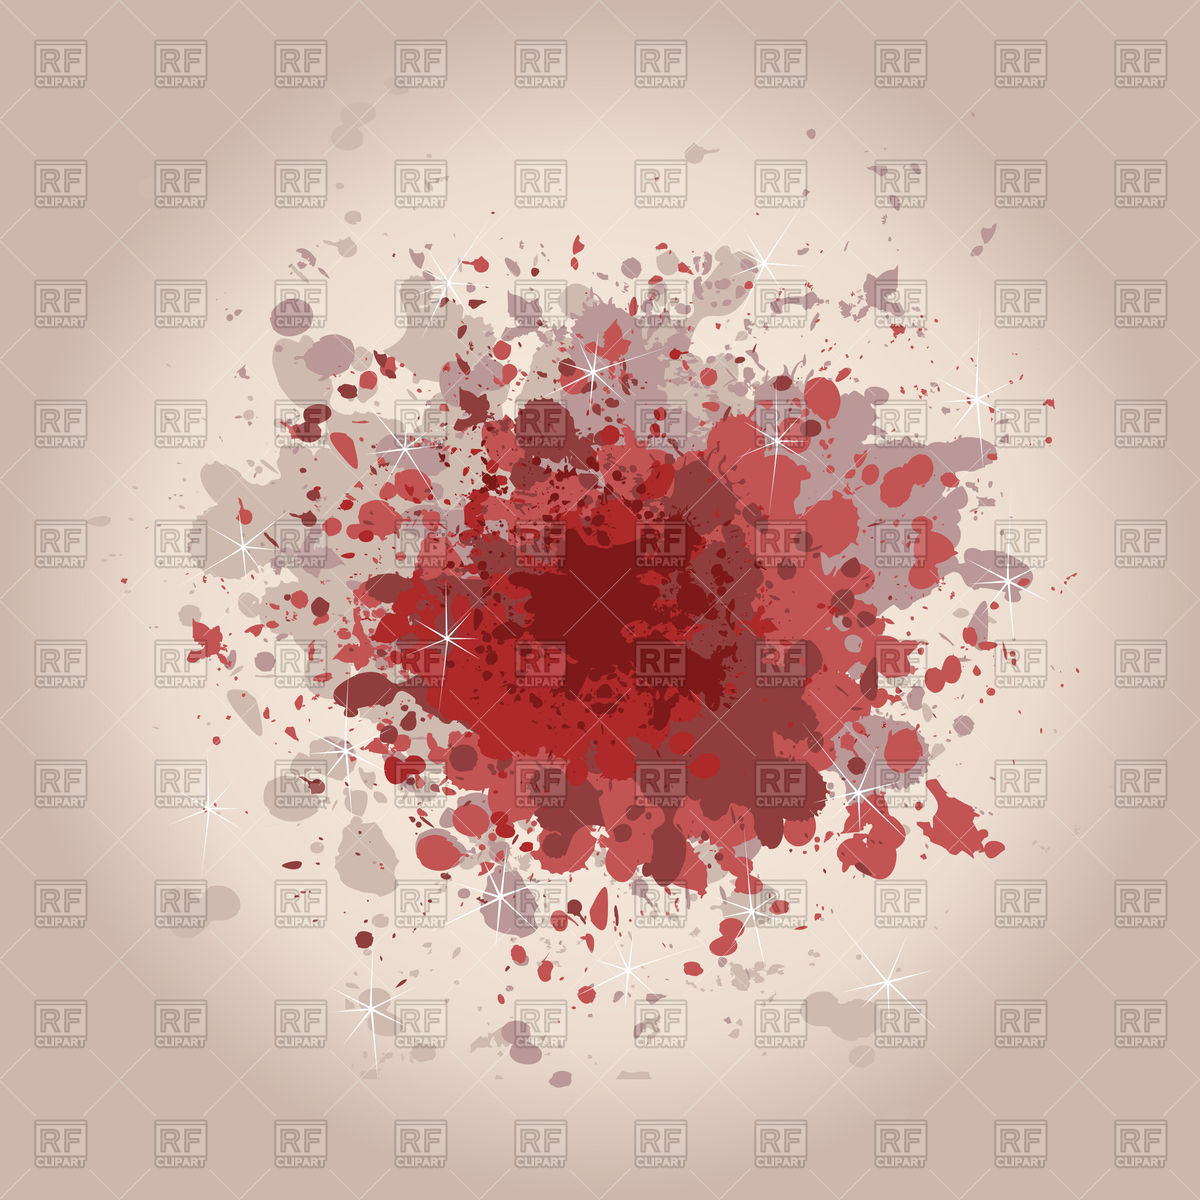 Red stain on old paper Vector Image #78795.